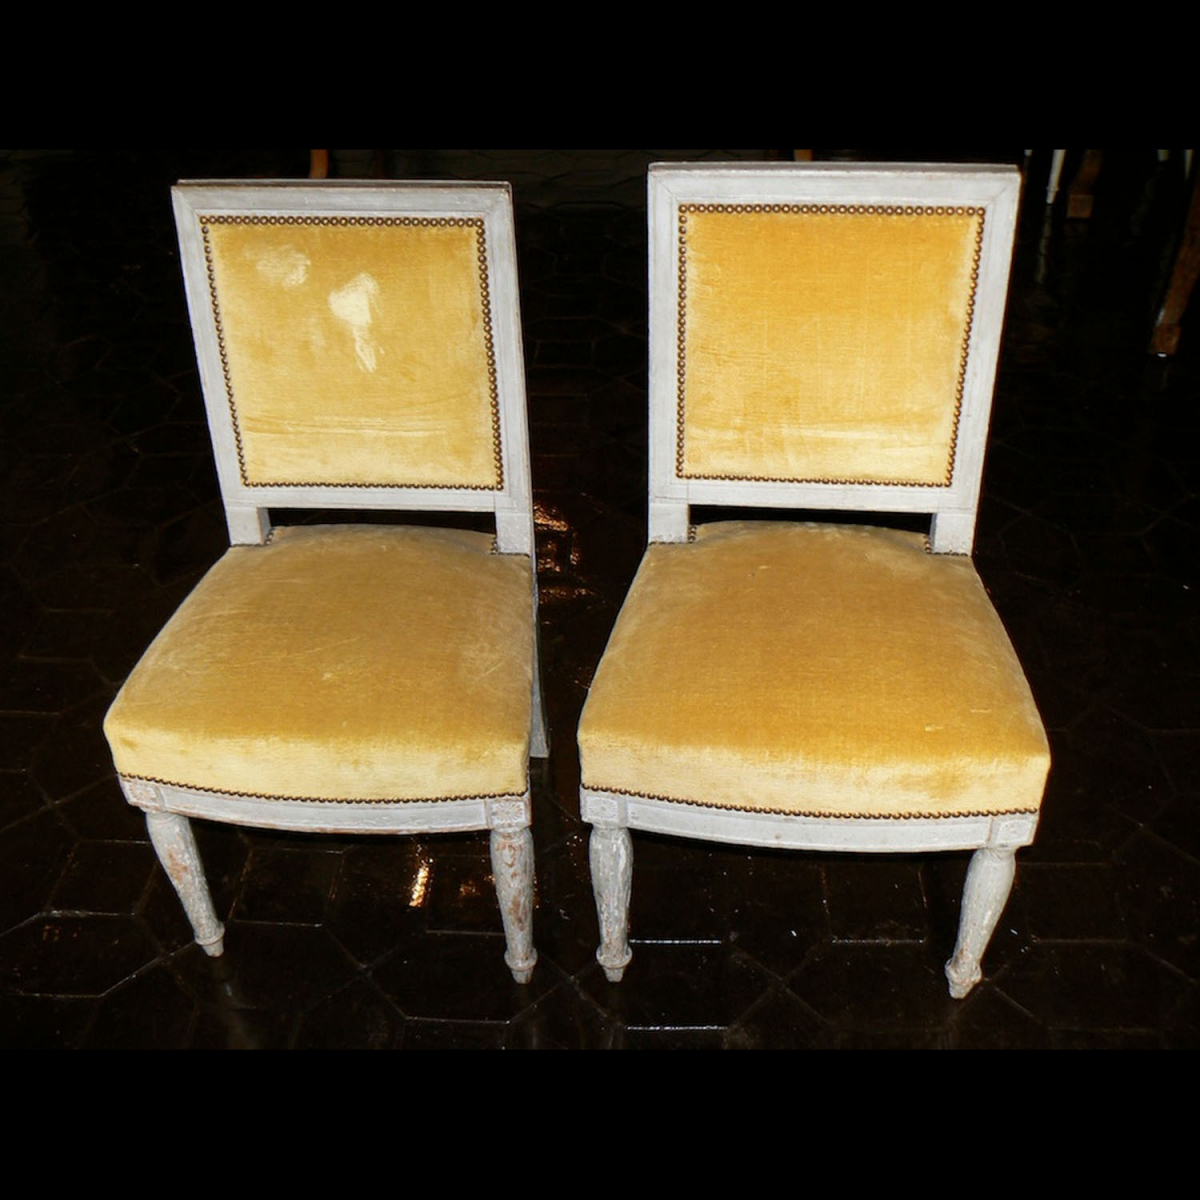 Photo of pair-of-chairs-first-empire-sellier-chateau-versailles-chateau-fontainebleau-palais-des-tuileries-galerie-golconda